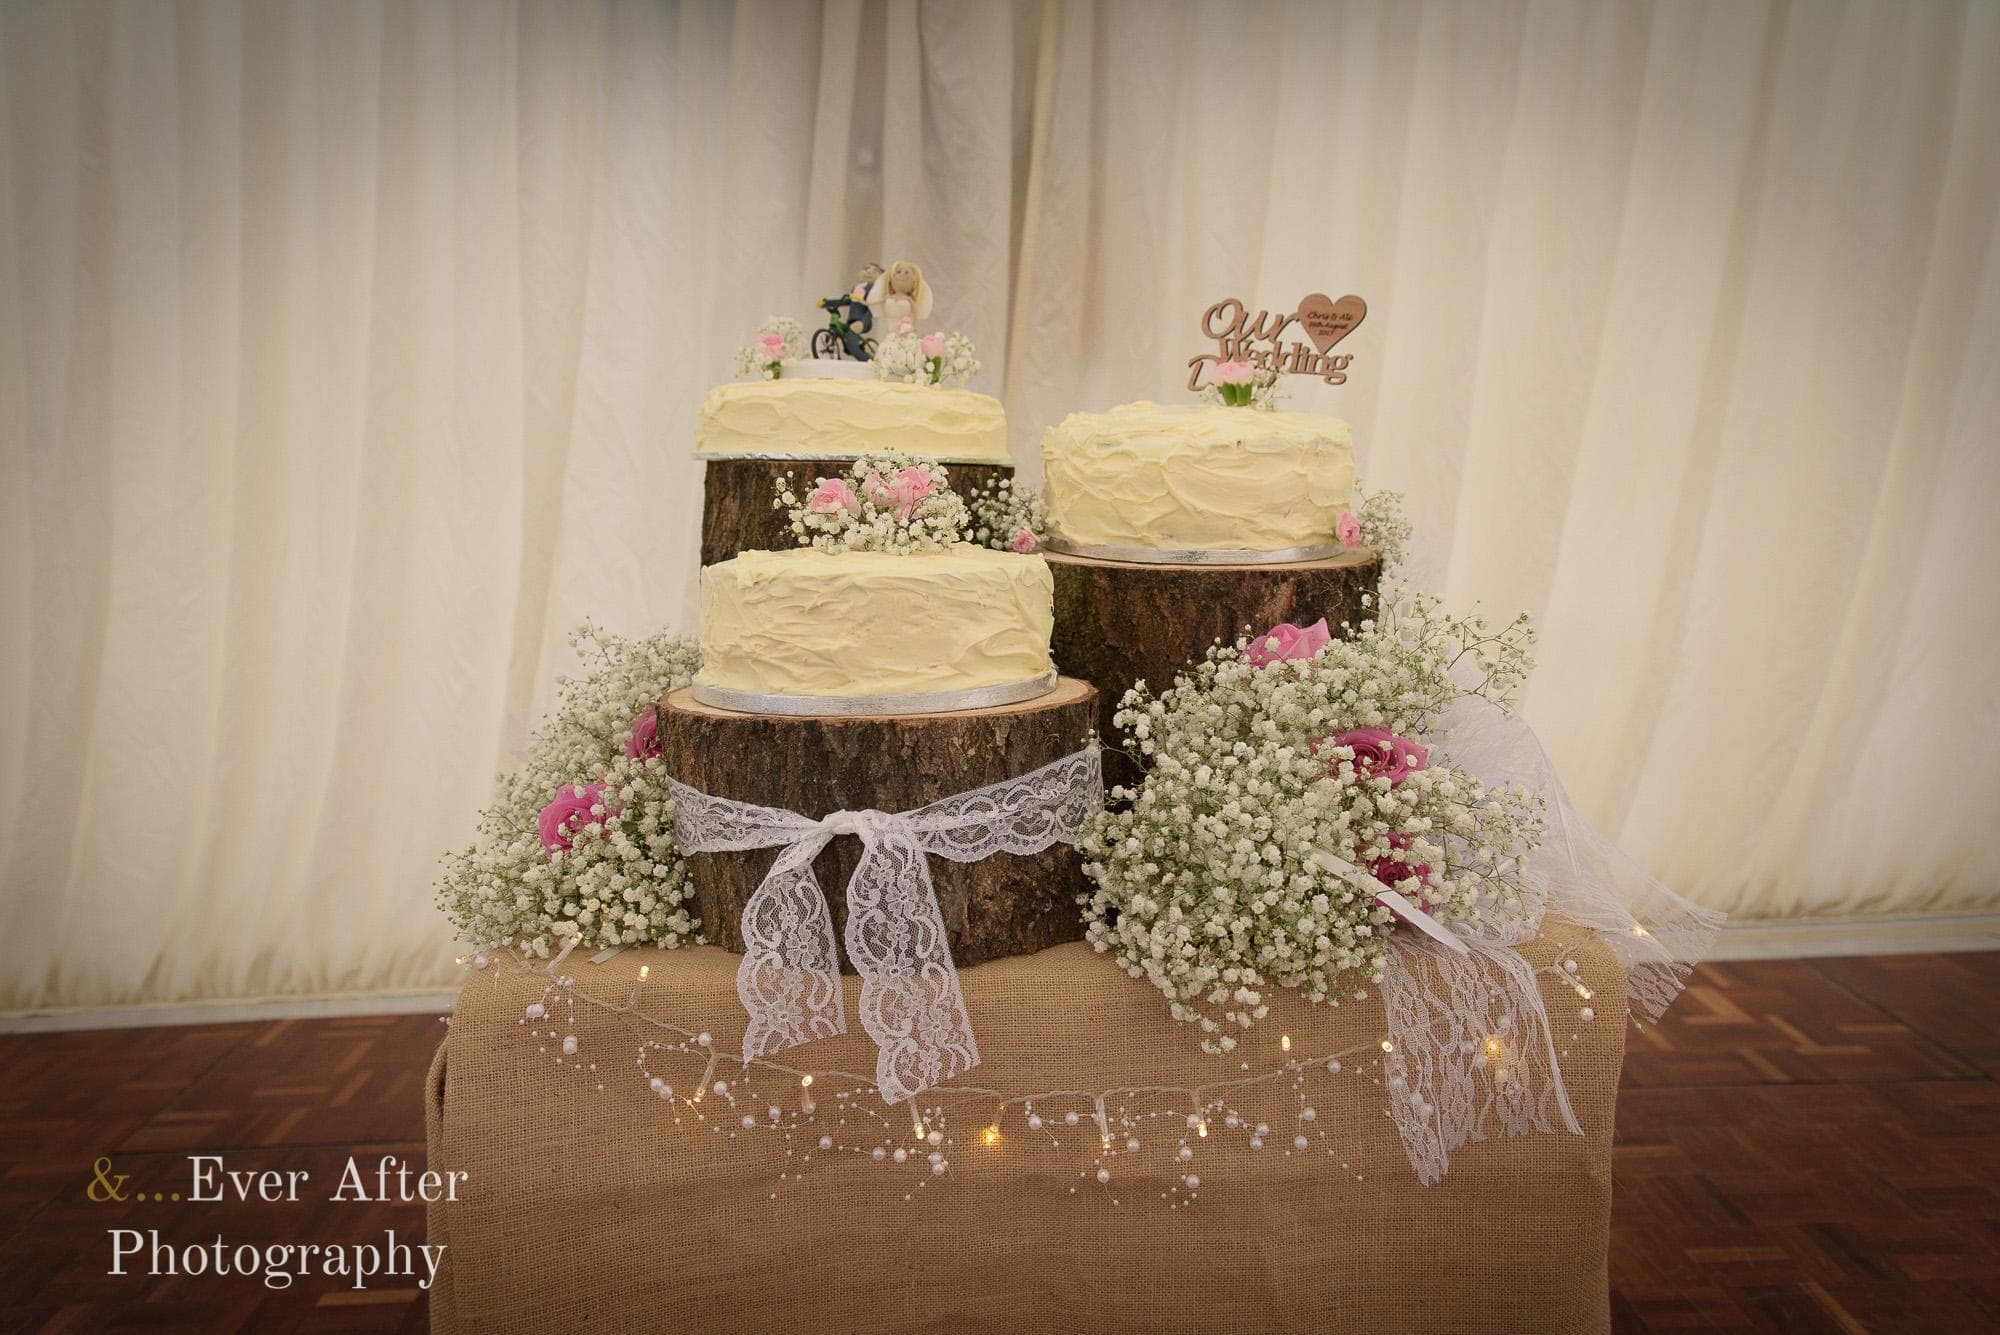 wedding cake, cake topper, rustic cake display